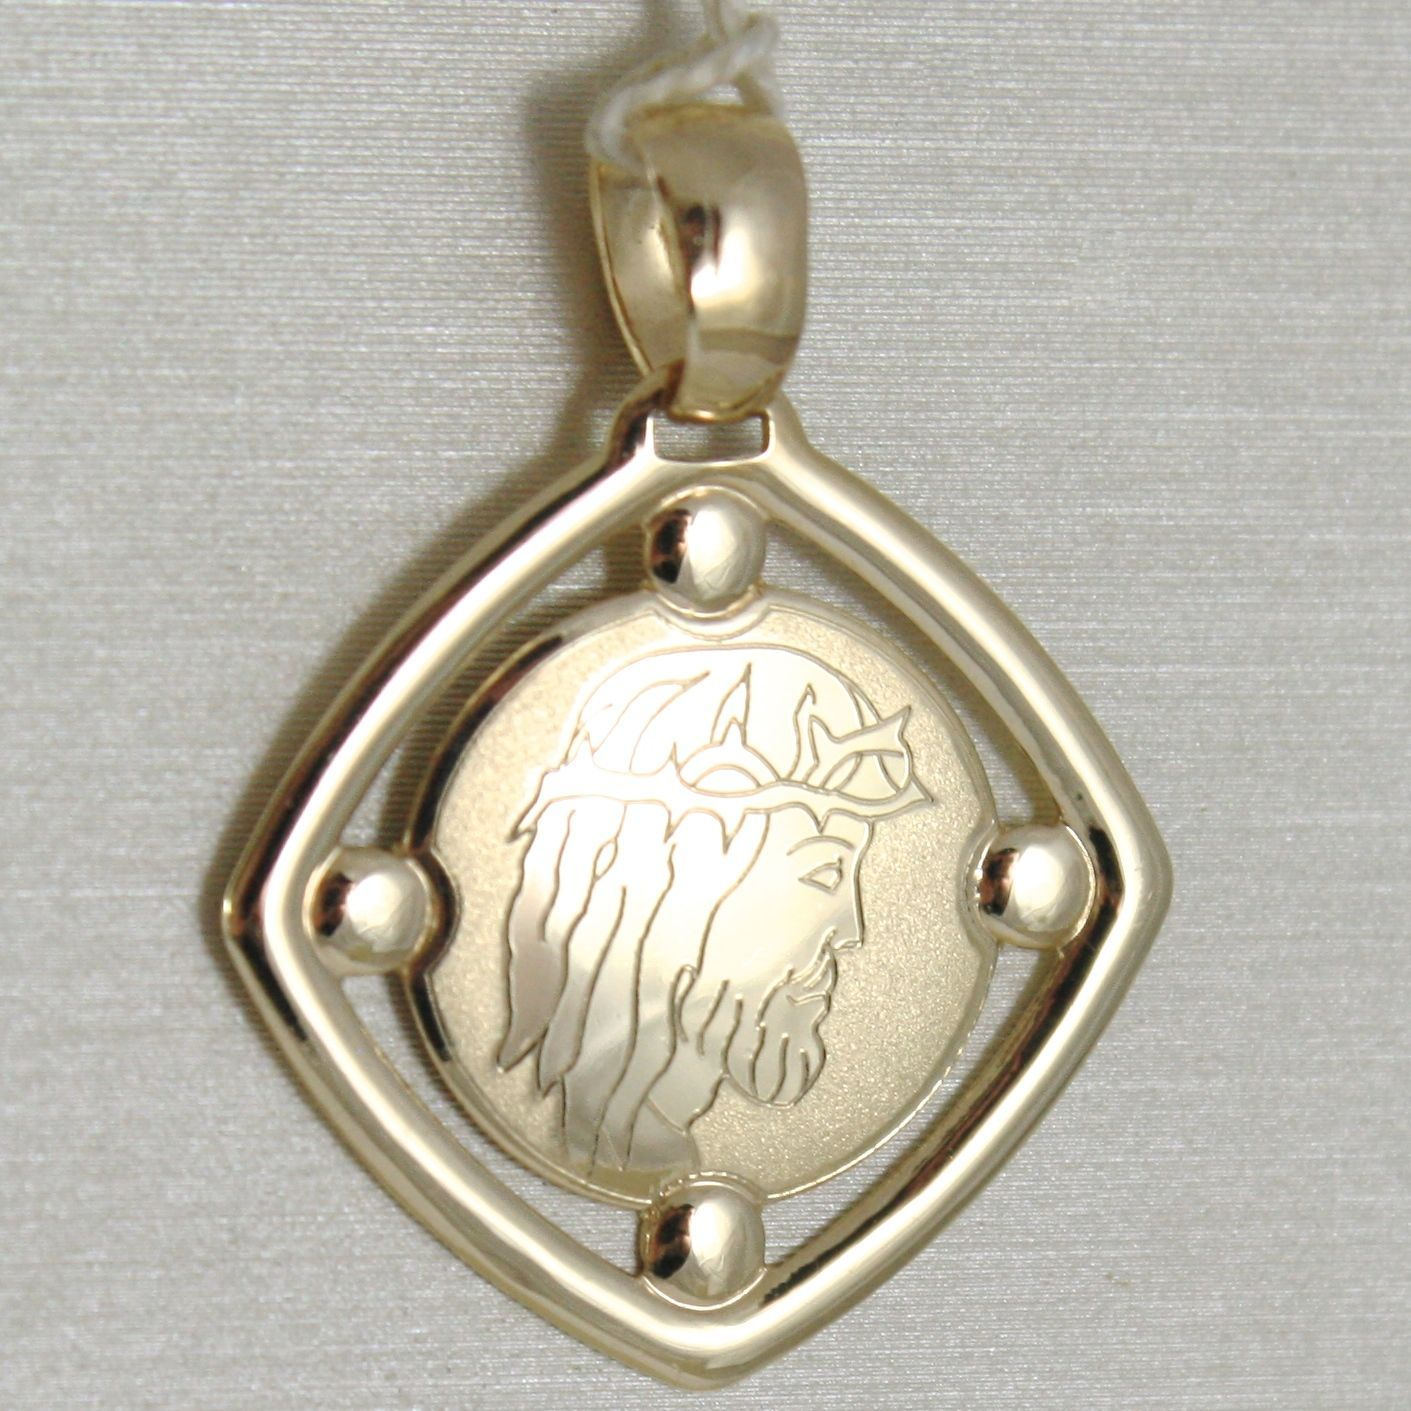 PENDENTIF MÉDAILLE OR JAUNE 375 9K, VISAGE CHRIST, LOSANGE, SATIN, MADE IN ITALY